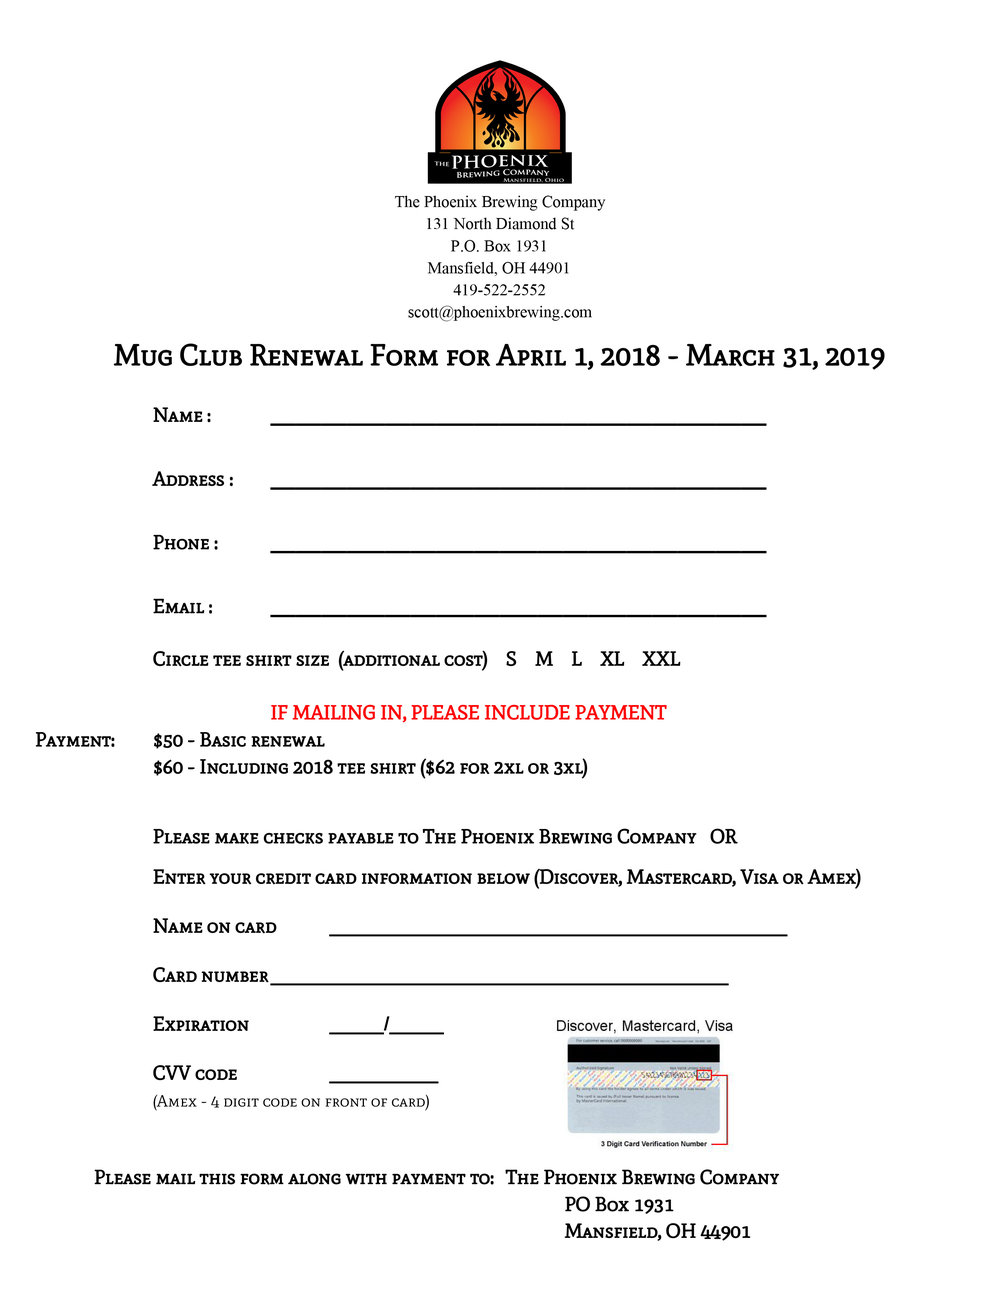 Mug club 2018 renewal form.jpg